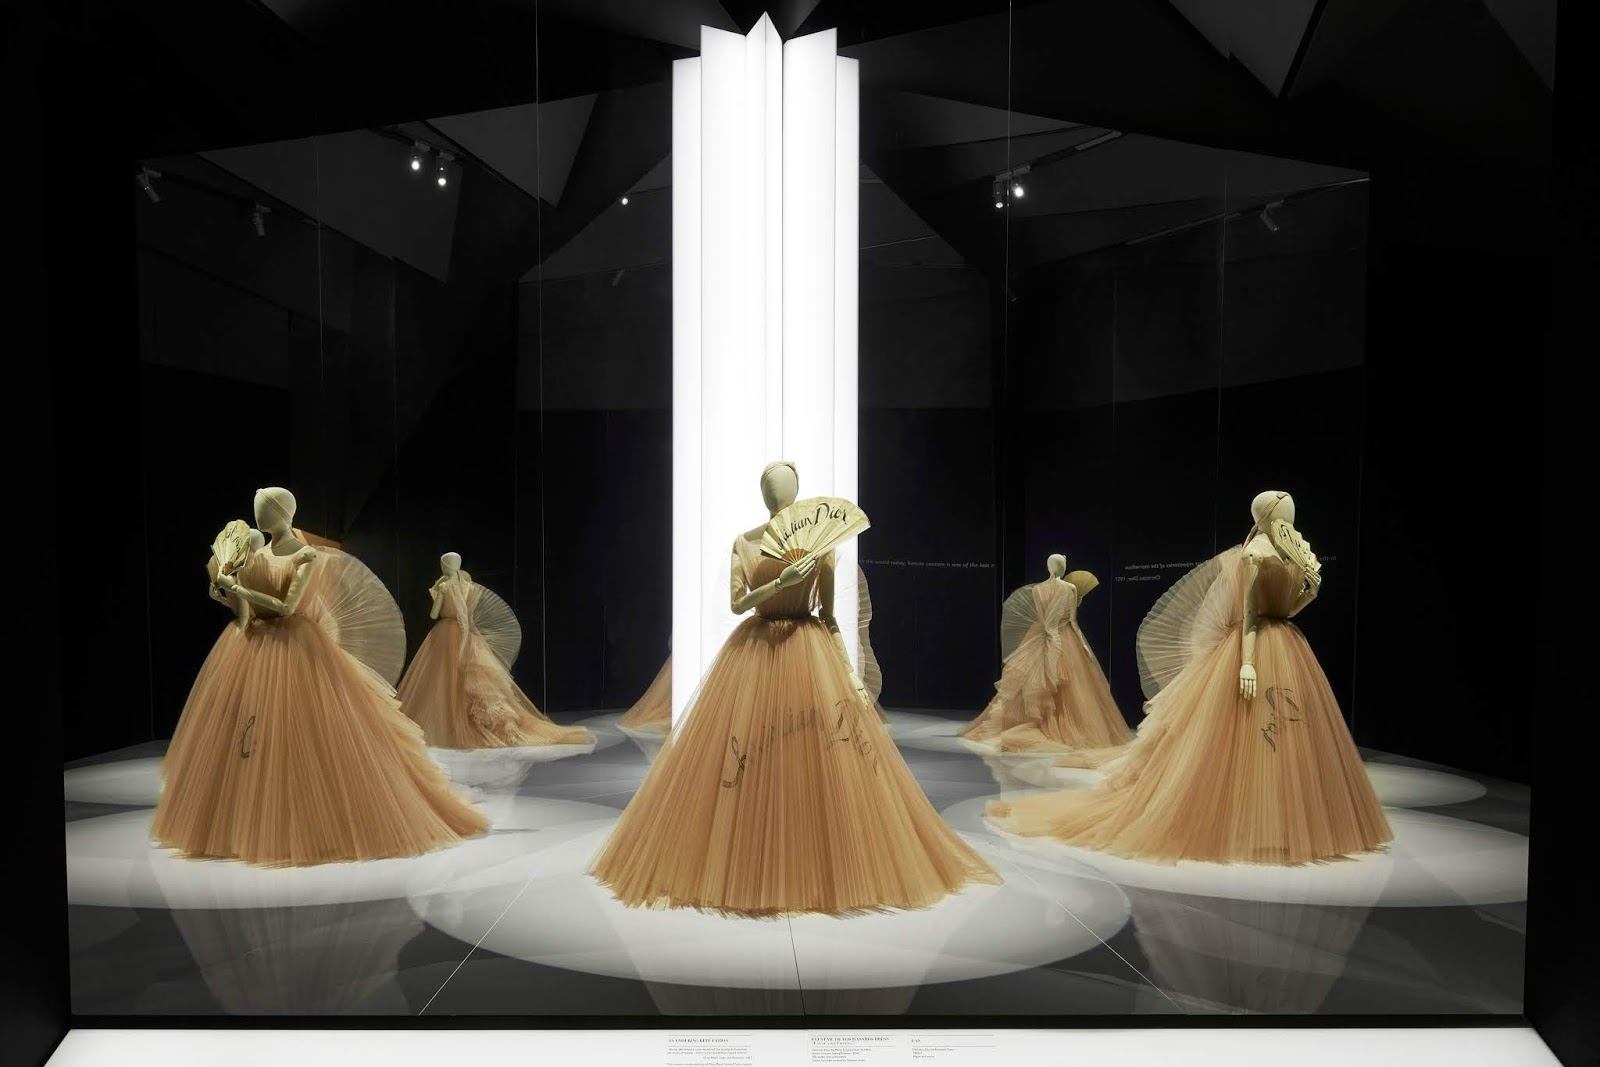 V&A_Christian Dior Designer of Dreams exhibition_Ballroom section (c) ADRIEN DIRAND